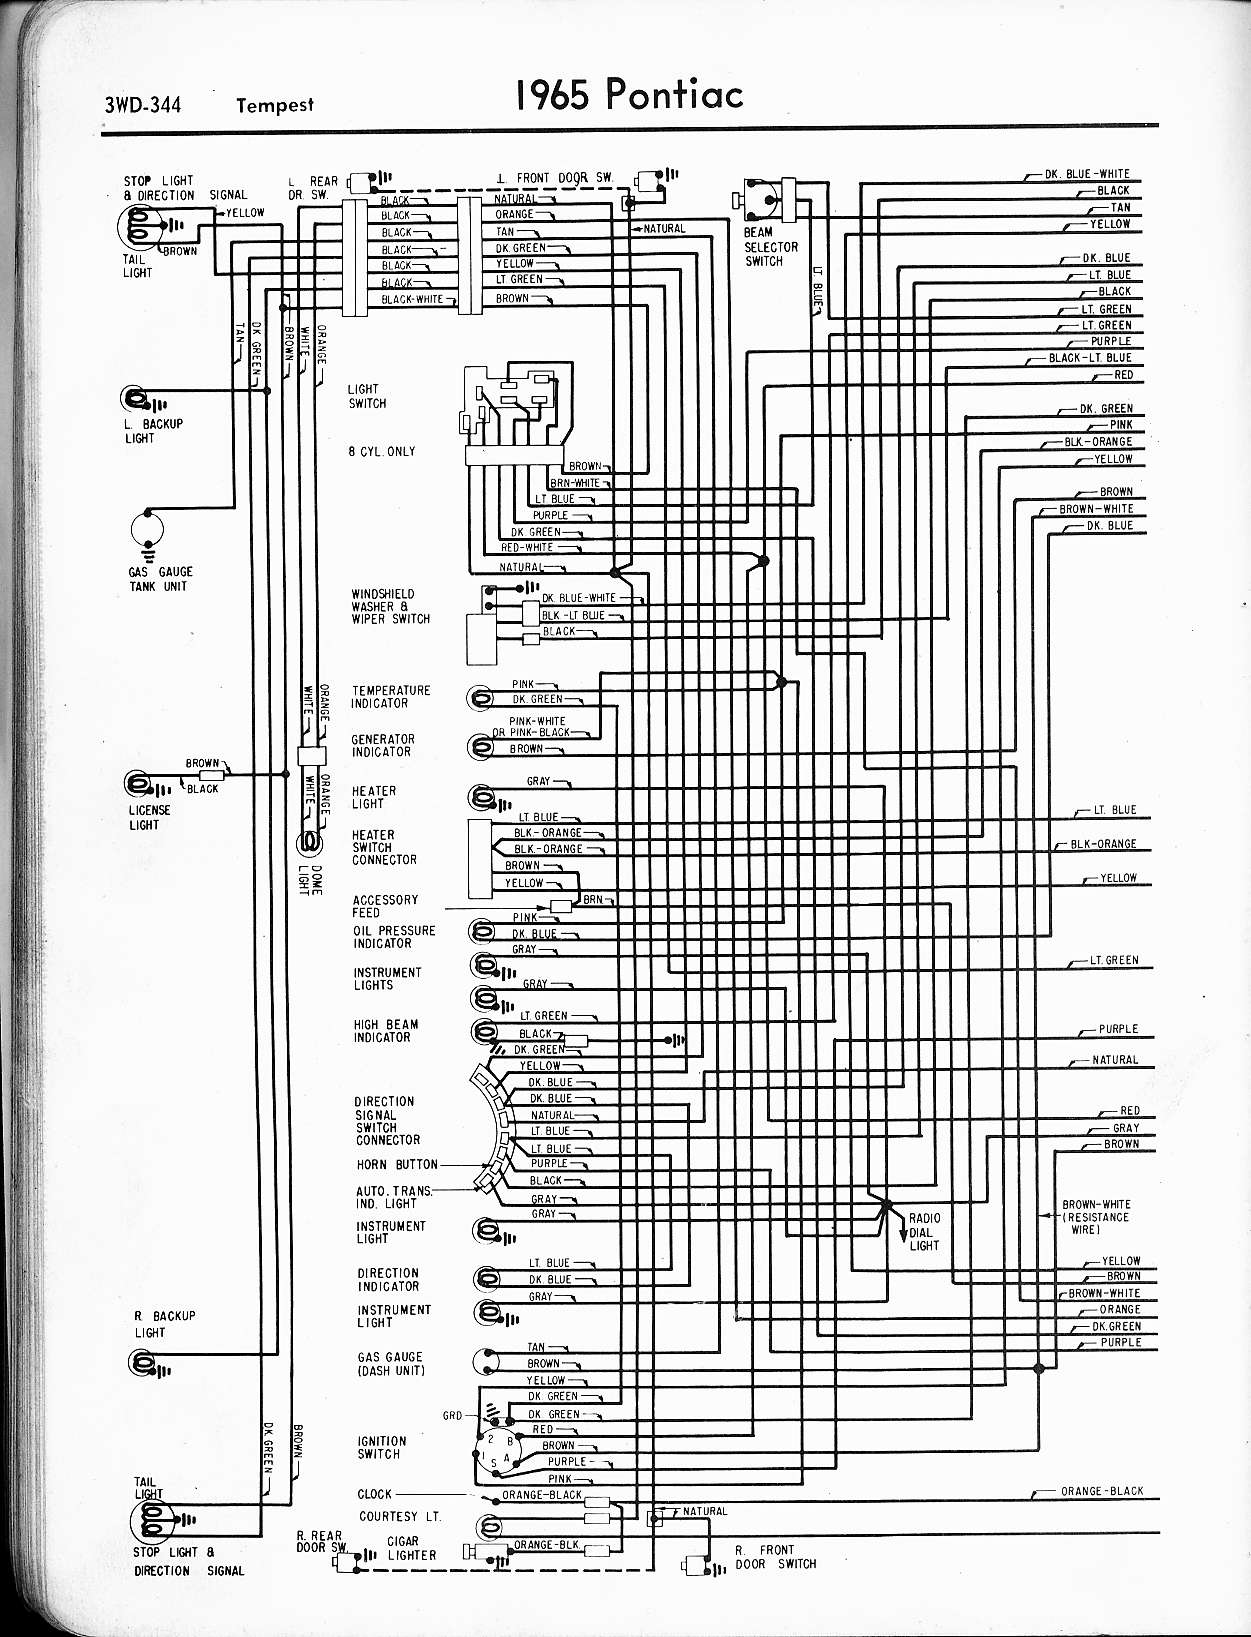 wiring diagram pontiac gto judge free download data wiring diagram Hood Mounted Tachometer wiring diagram pontiac gto judge free download wiring diagram 1967 gto wiring diagram 67 gto